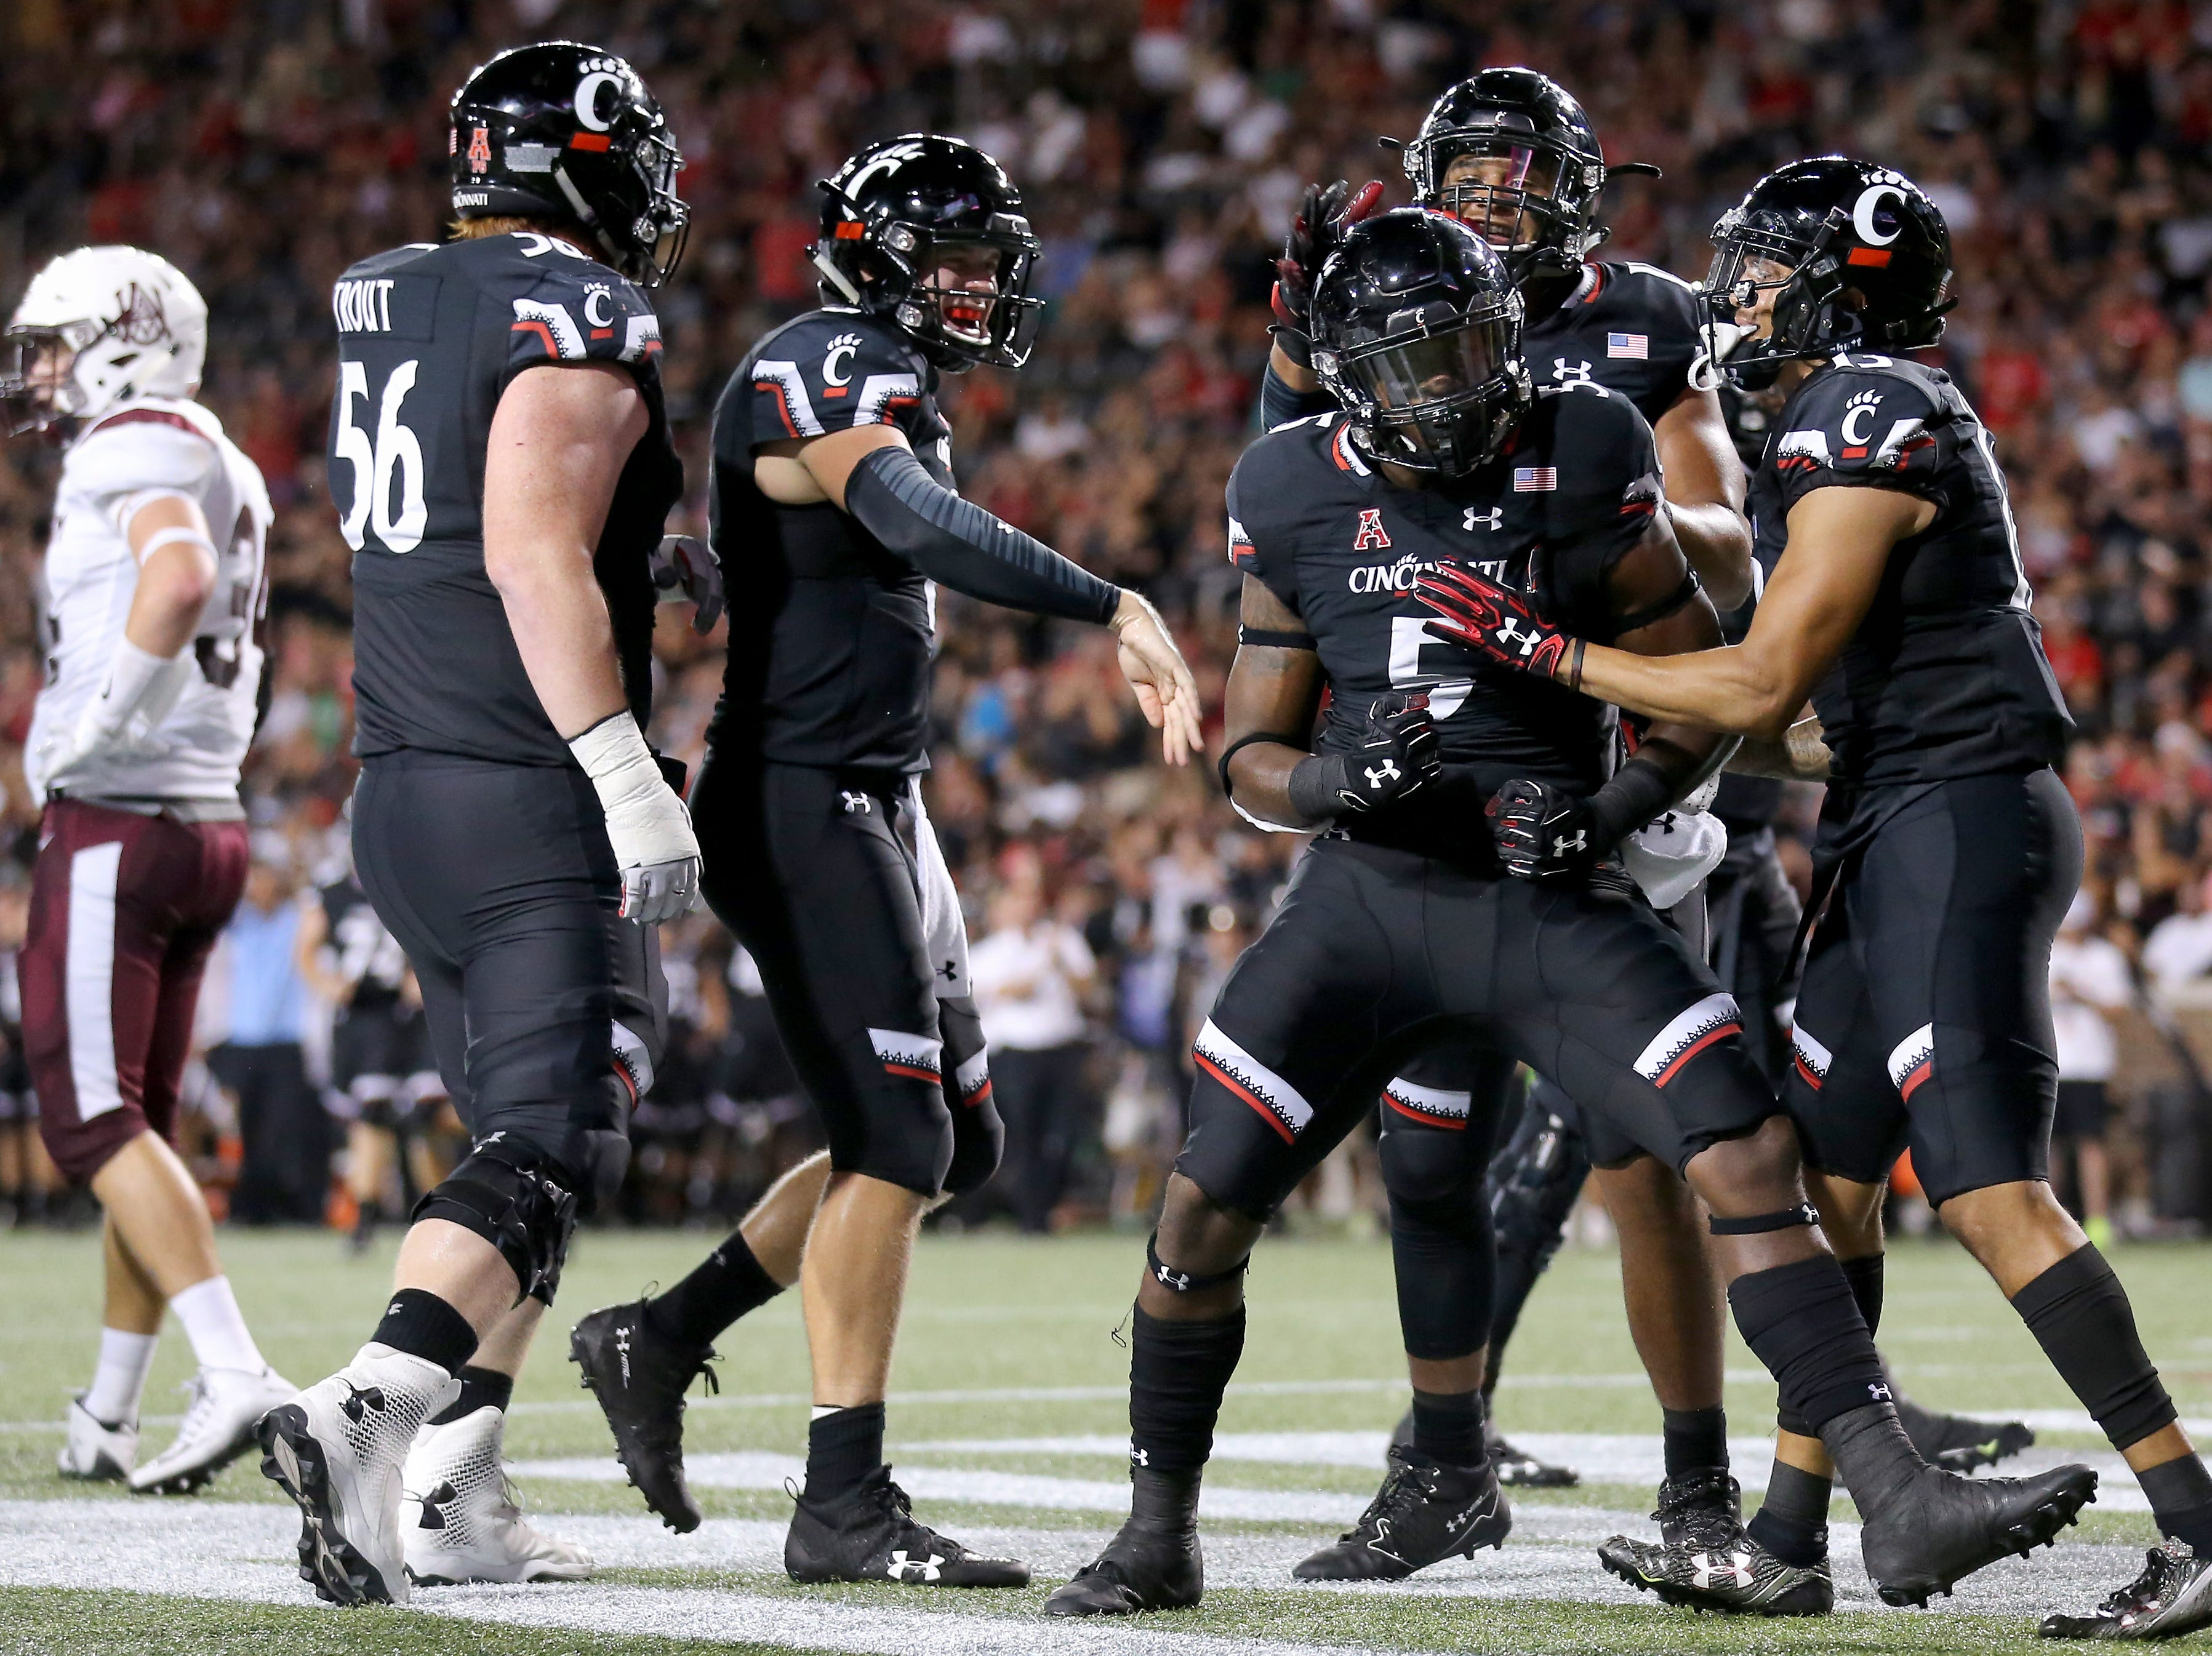 Cincinnati Bearcats running back Tavion Thomas (5), center, is congratulated after scoring a touchdown in the second quarter during a college football game between the Cincinnati Bearcats and the Alabama A&M Bulldogs, Saturday, Sept. 15, 2018, at Nippert Stadium in Cincinnati.